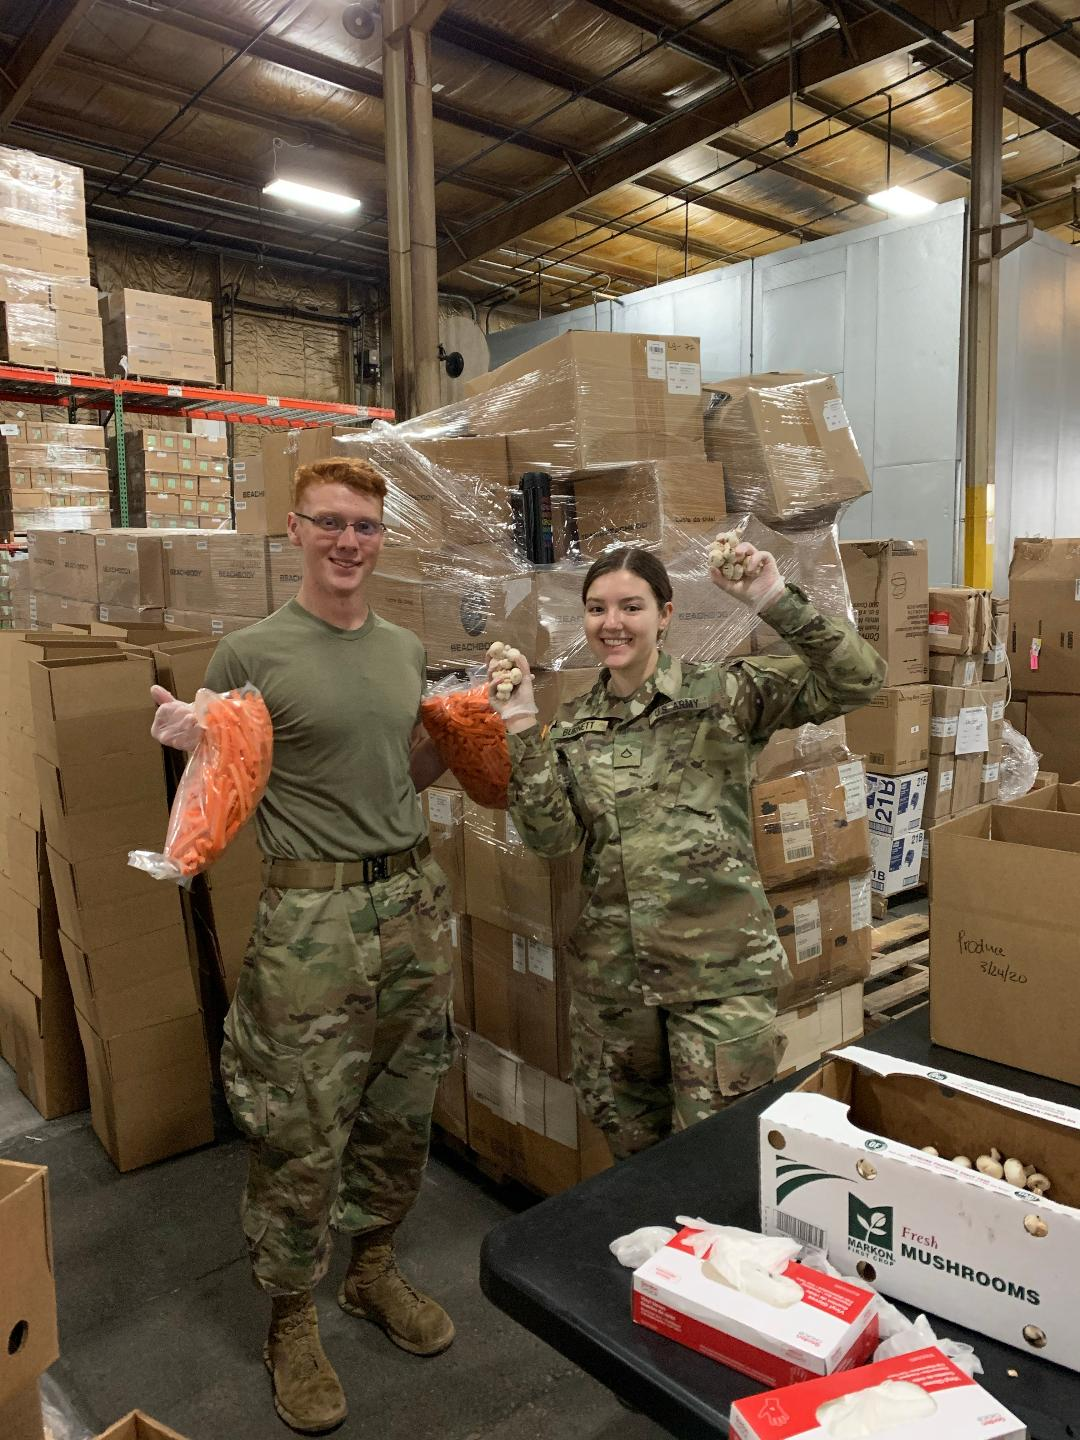 Soldiers load  boxes with produce.